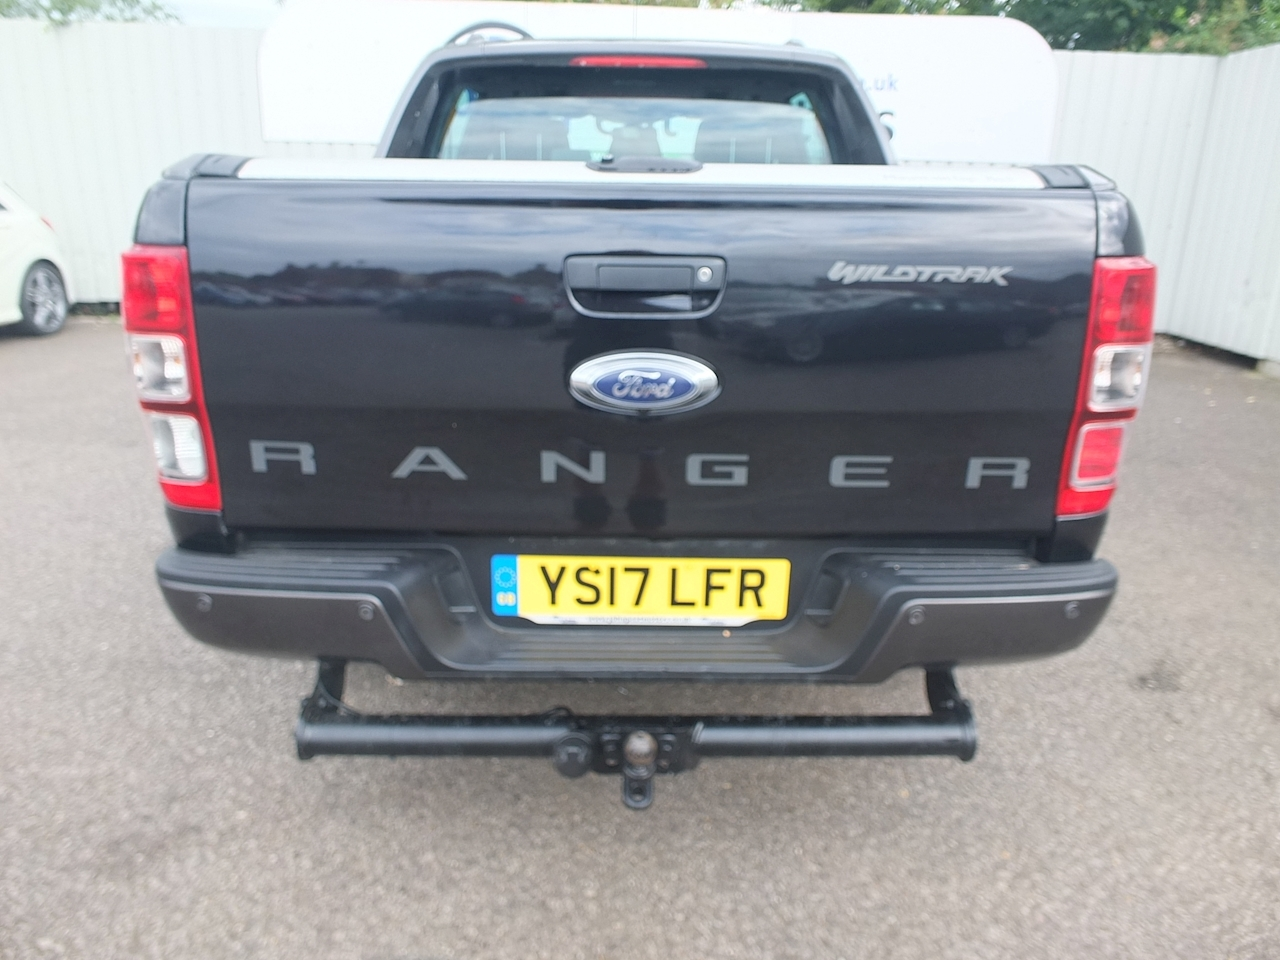 Ranger Wildtrak 4X4 Dcb Tdci Double Cab Pickup 3.2 Manual Diesel